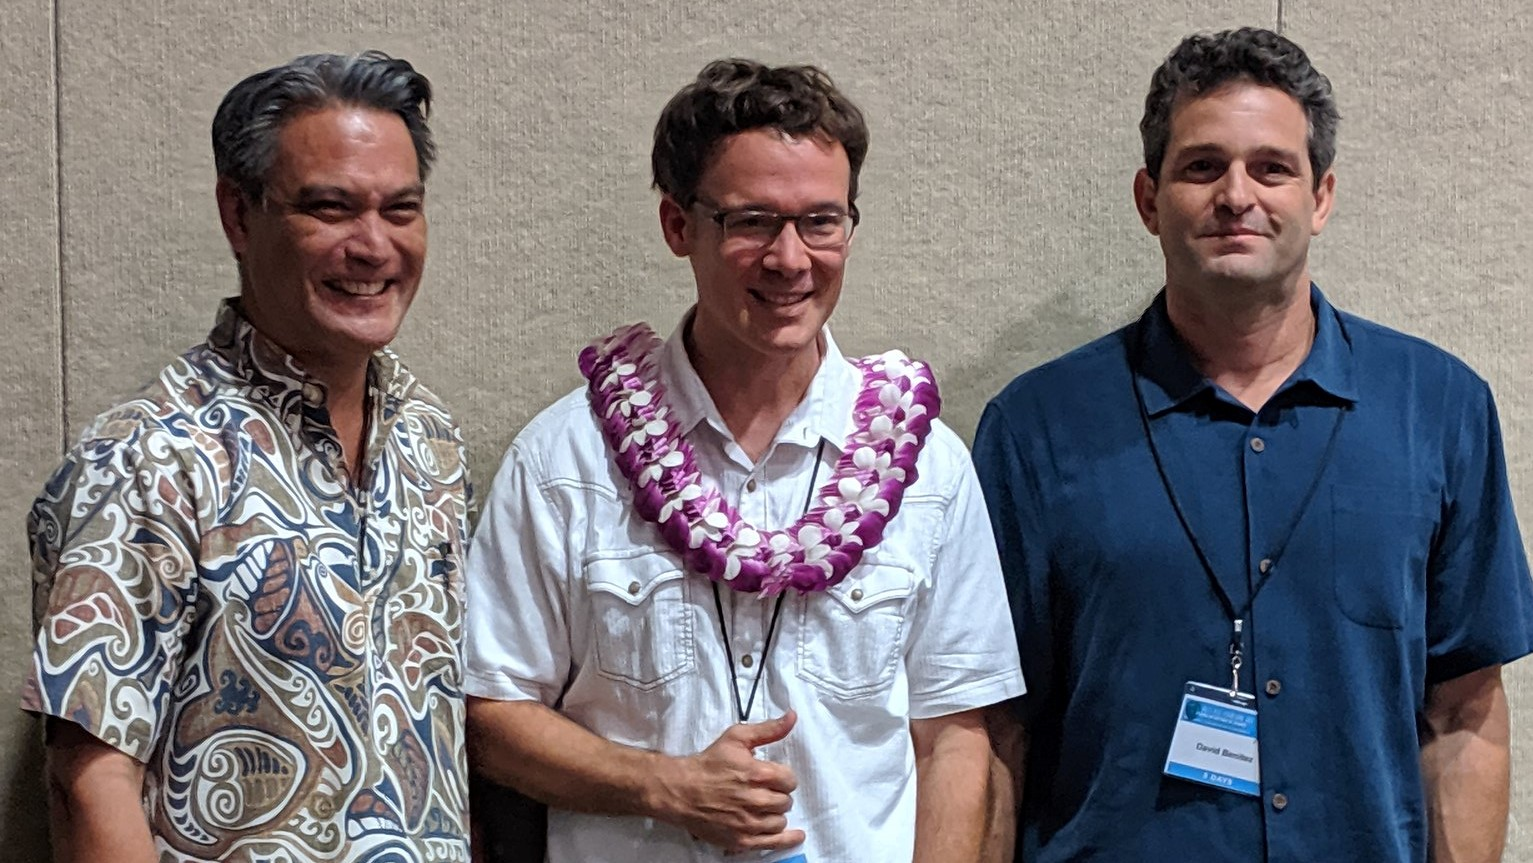 Ryan Perroy stands with presenters of award. He wears a lei.